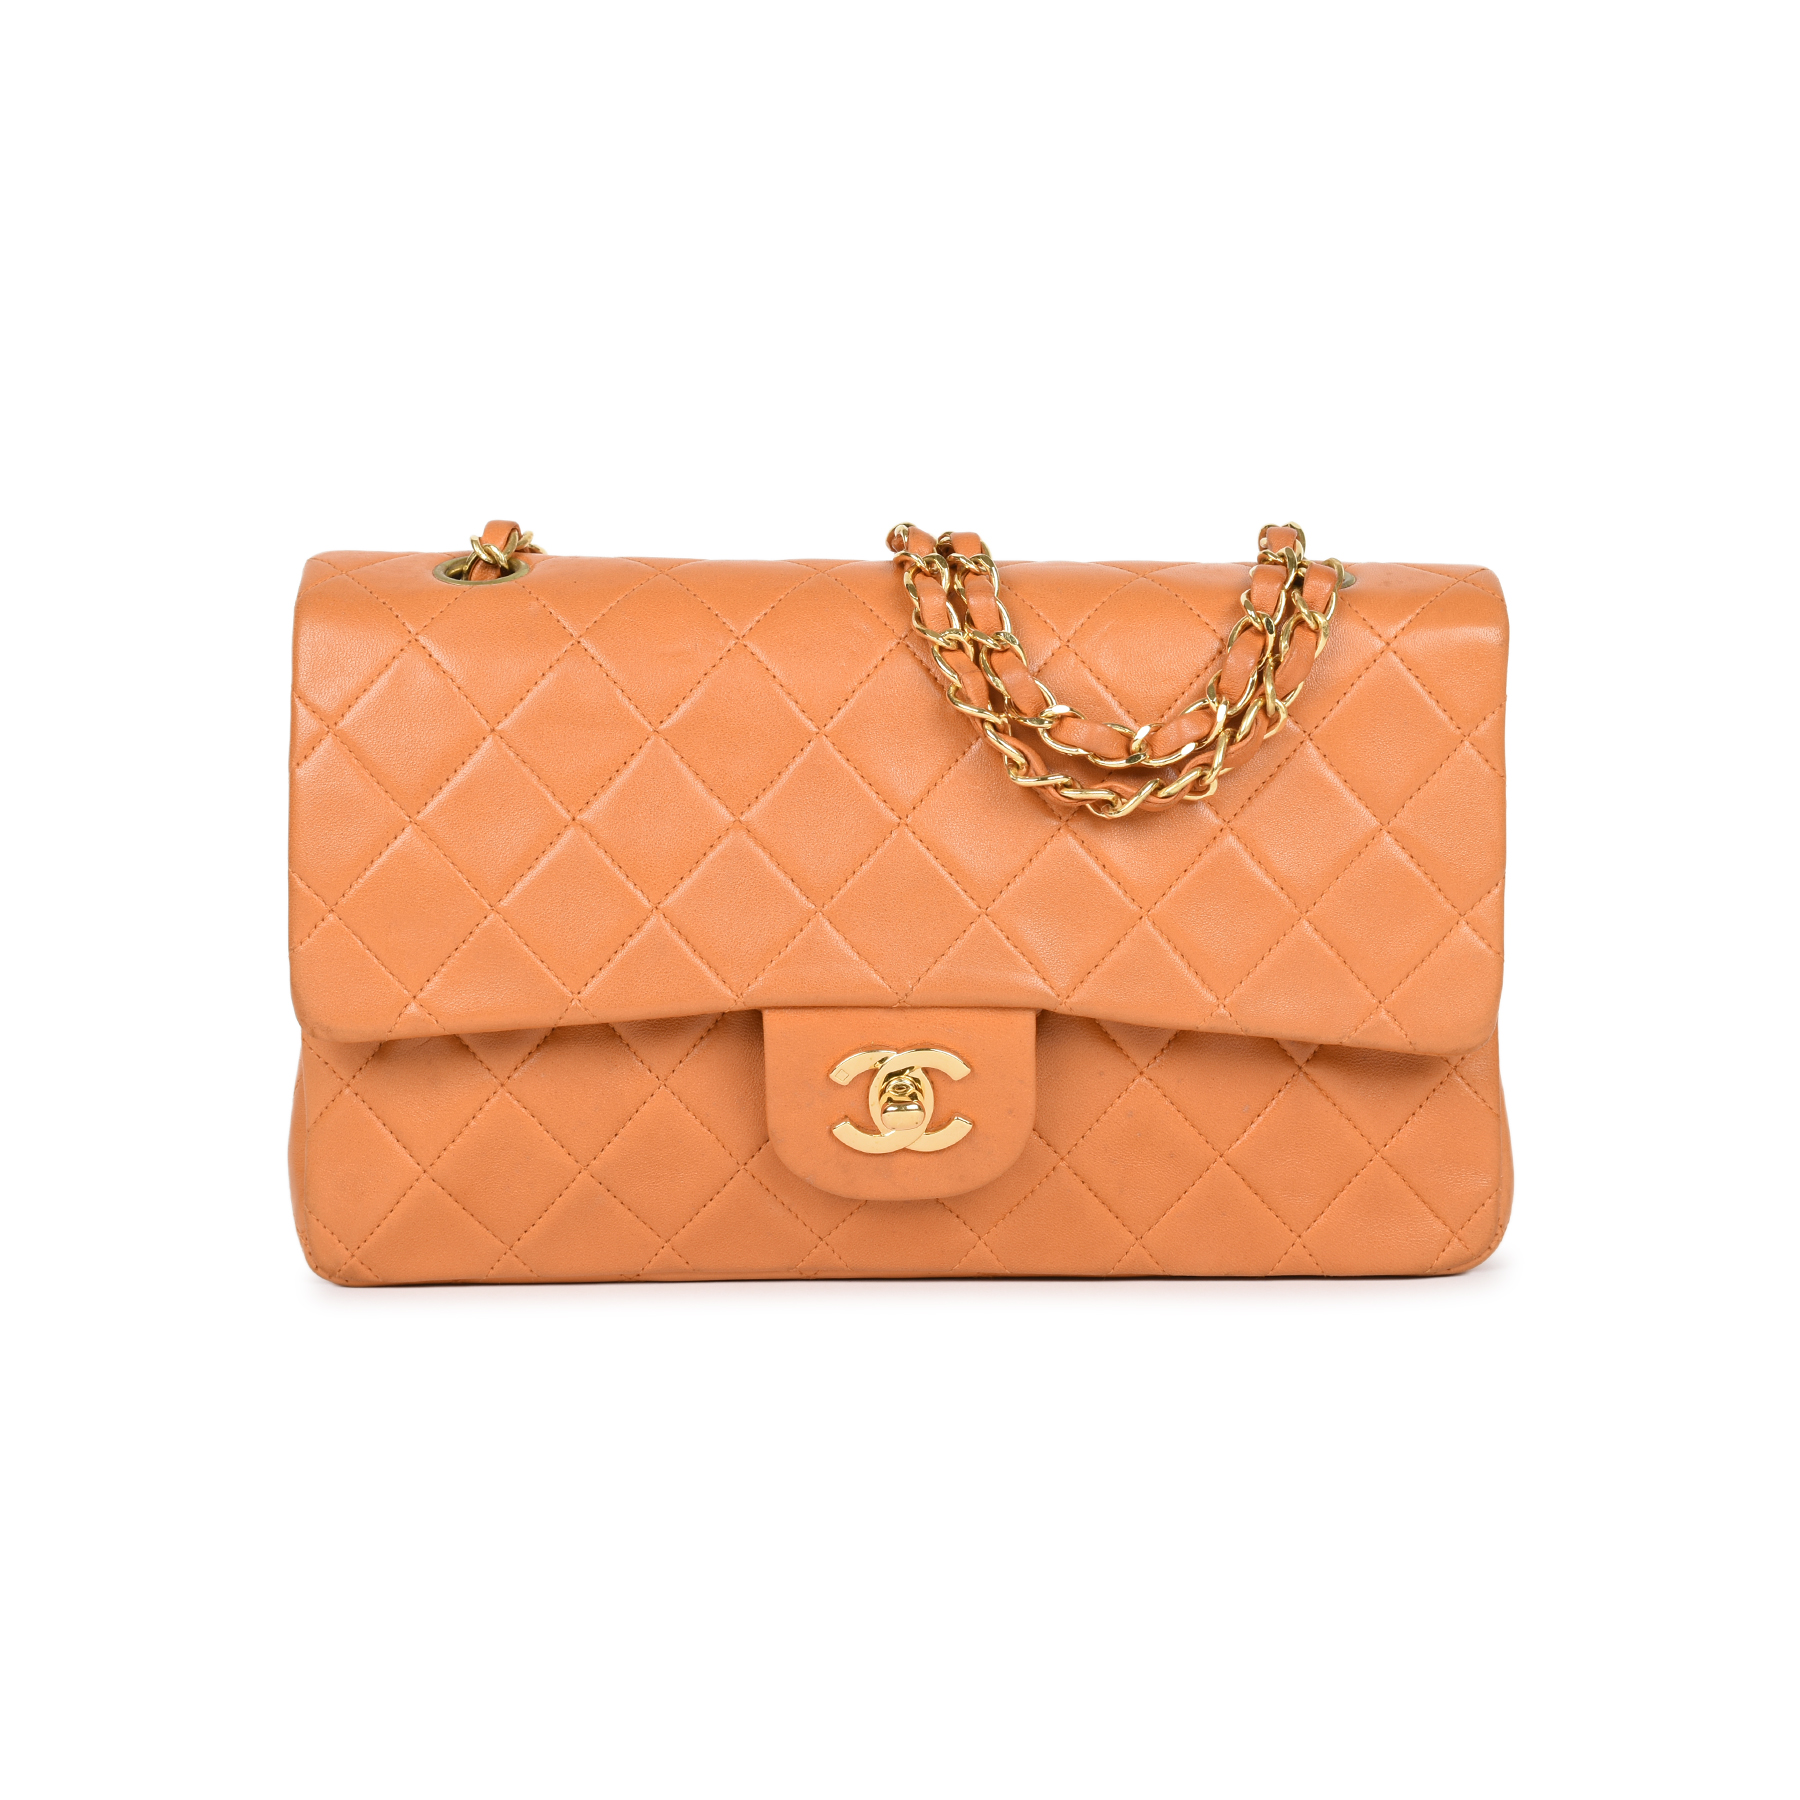 b4534a064f59 Authentic Second Hand Chanel Orange Medium Classic Flap Bag (PSS-051-00380)